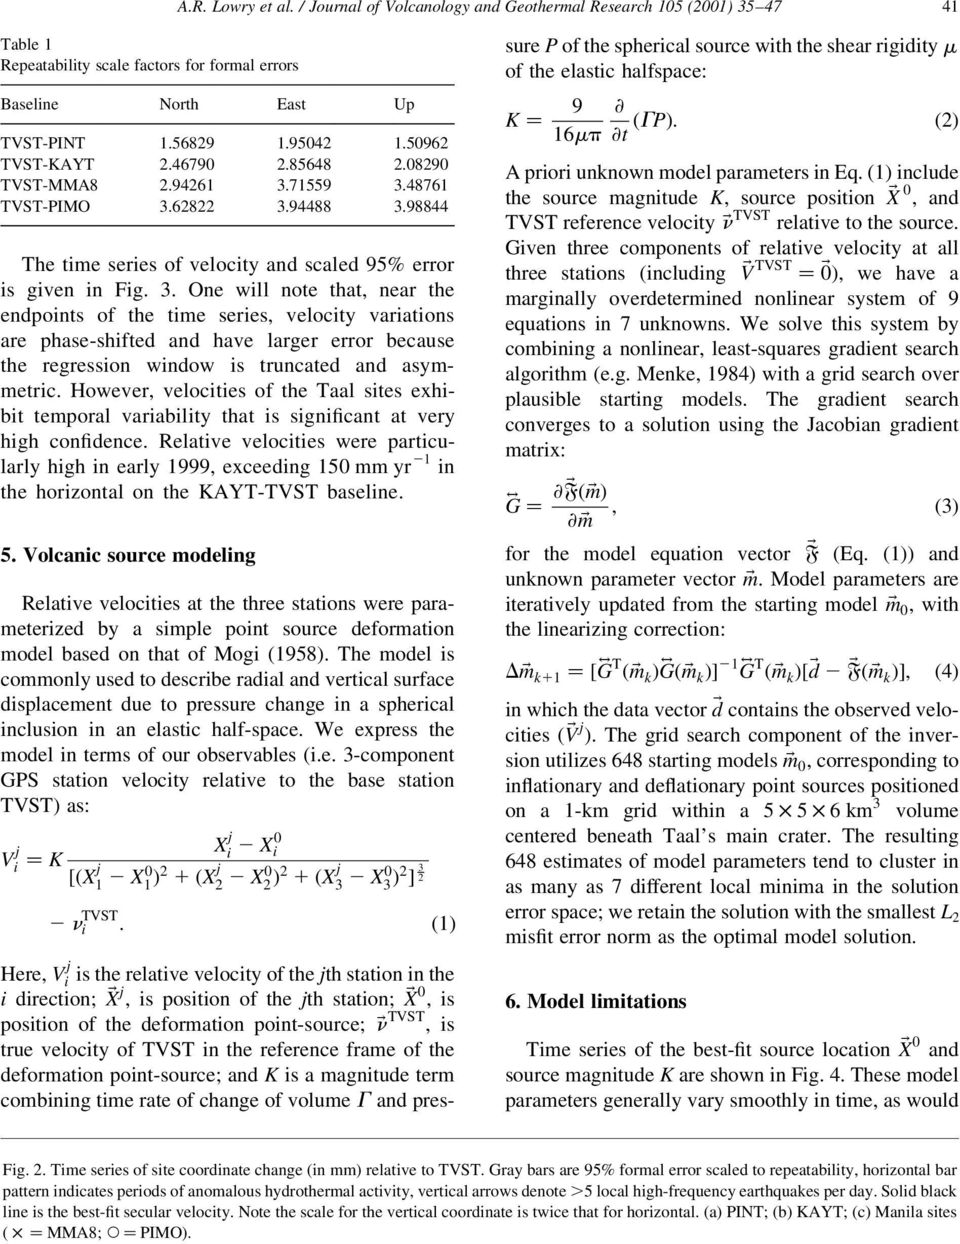 71559 3.48761 TVST-PIMO 3.62822 3.94488 3.98844 The time series of velocity and scaled 95% error is given in Fig. 3. One will note that, near the endpoints of the time series, velocity variations are phase-shifted and have larger error because the regression window is truncated and asymmetric.